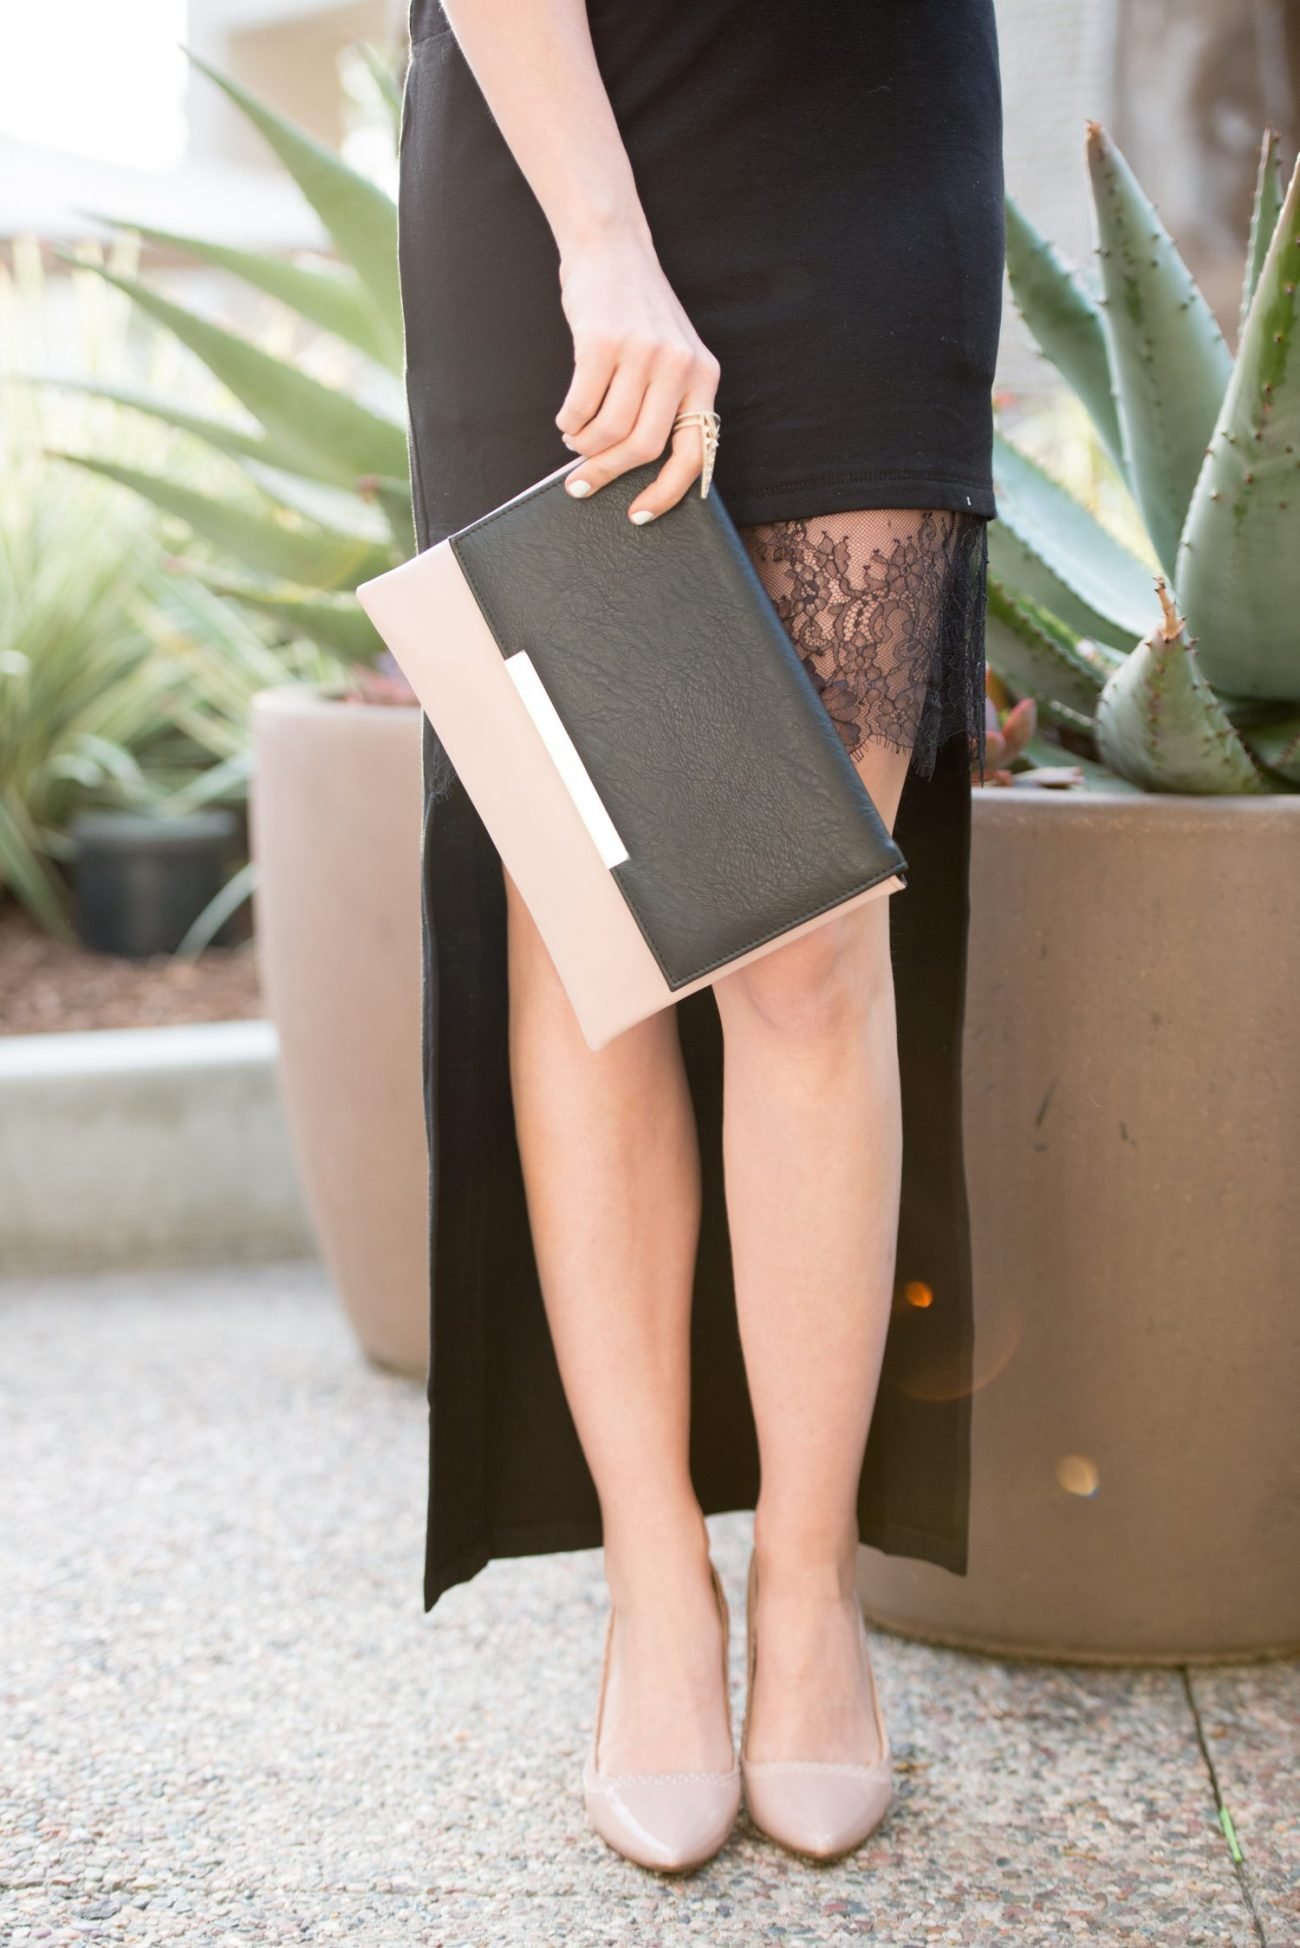 The Skinny Confidential talks shoes and purses.